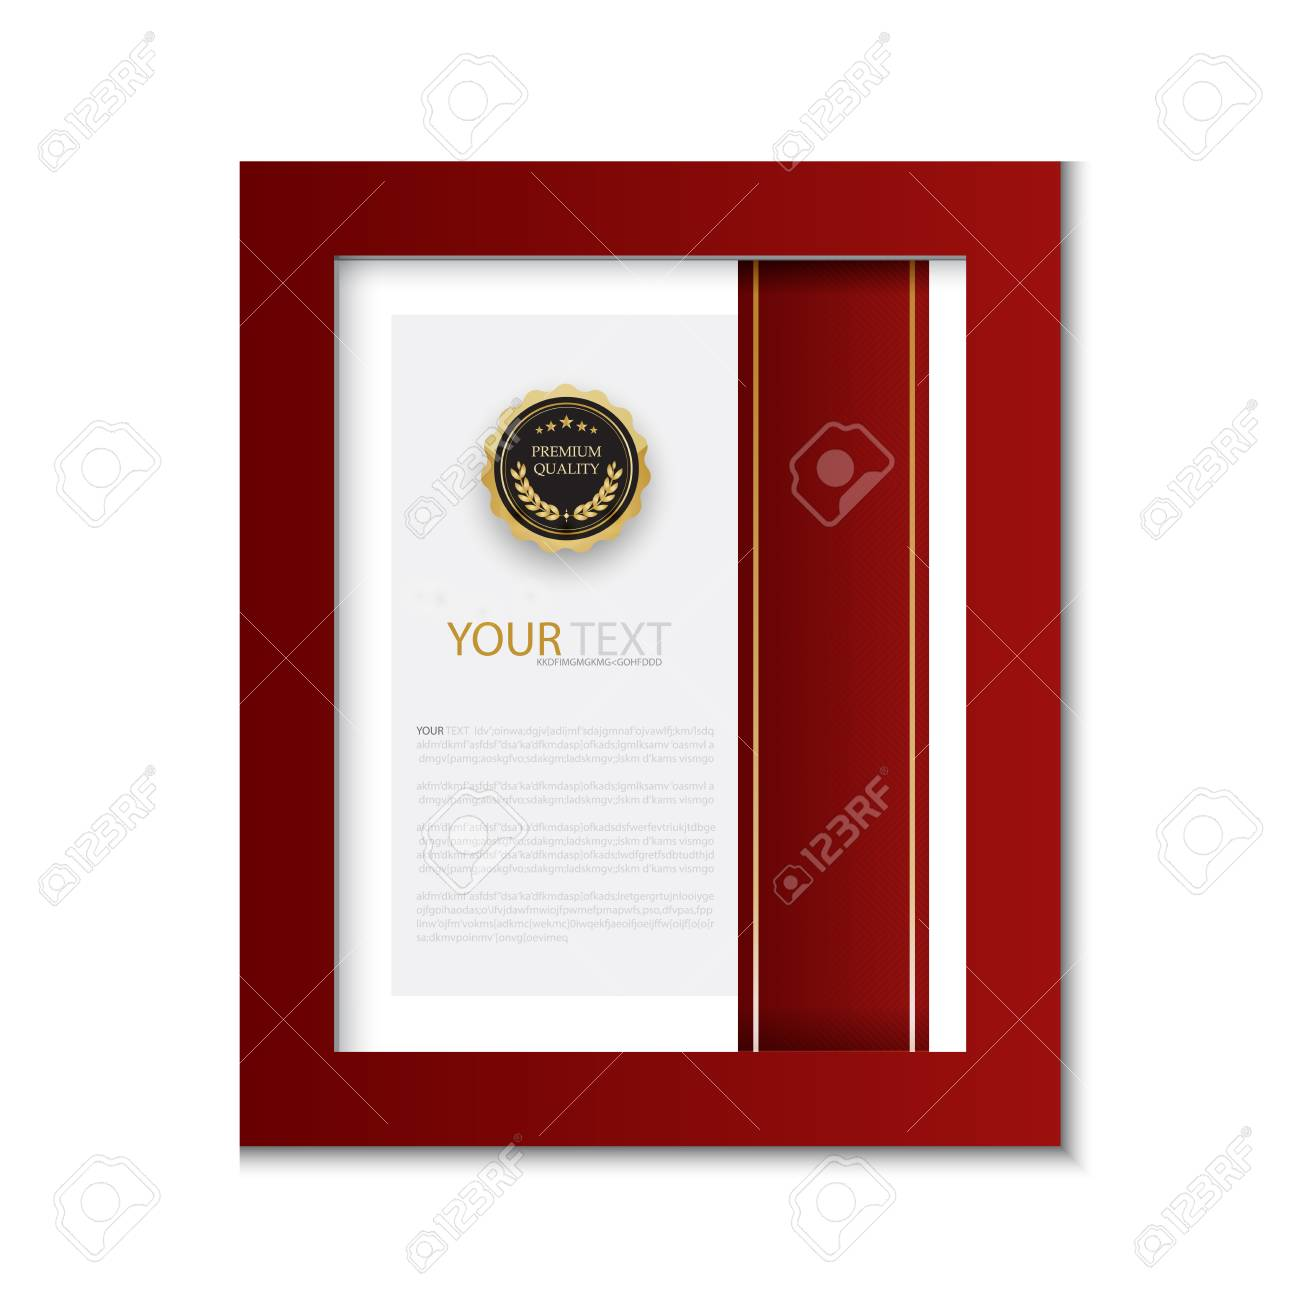 Diploma Certificate Template Red And Gold Color With Luxury And